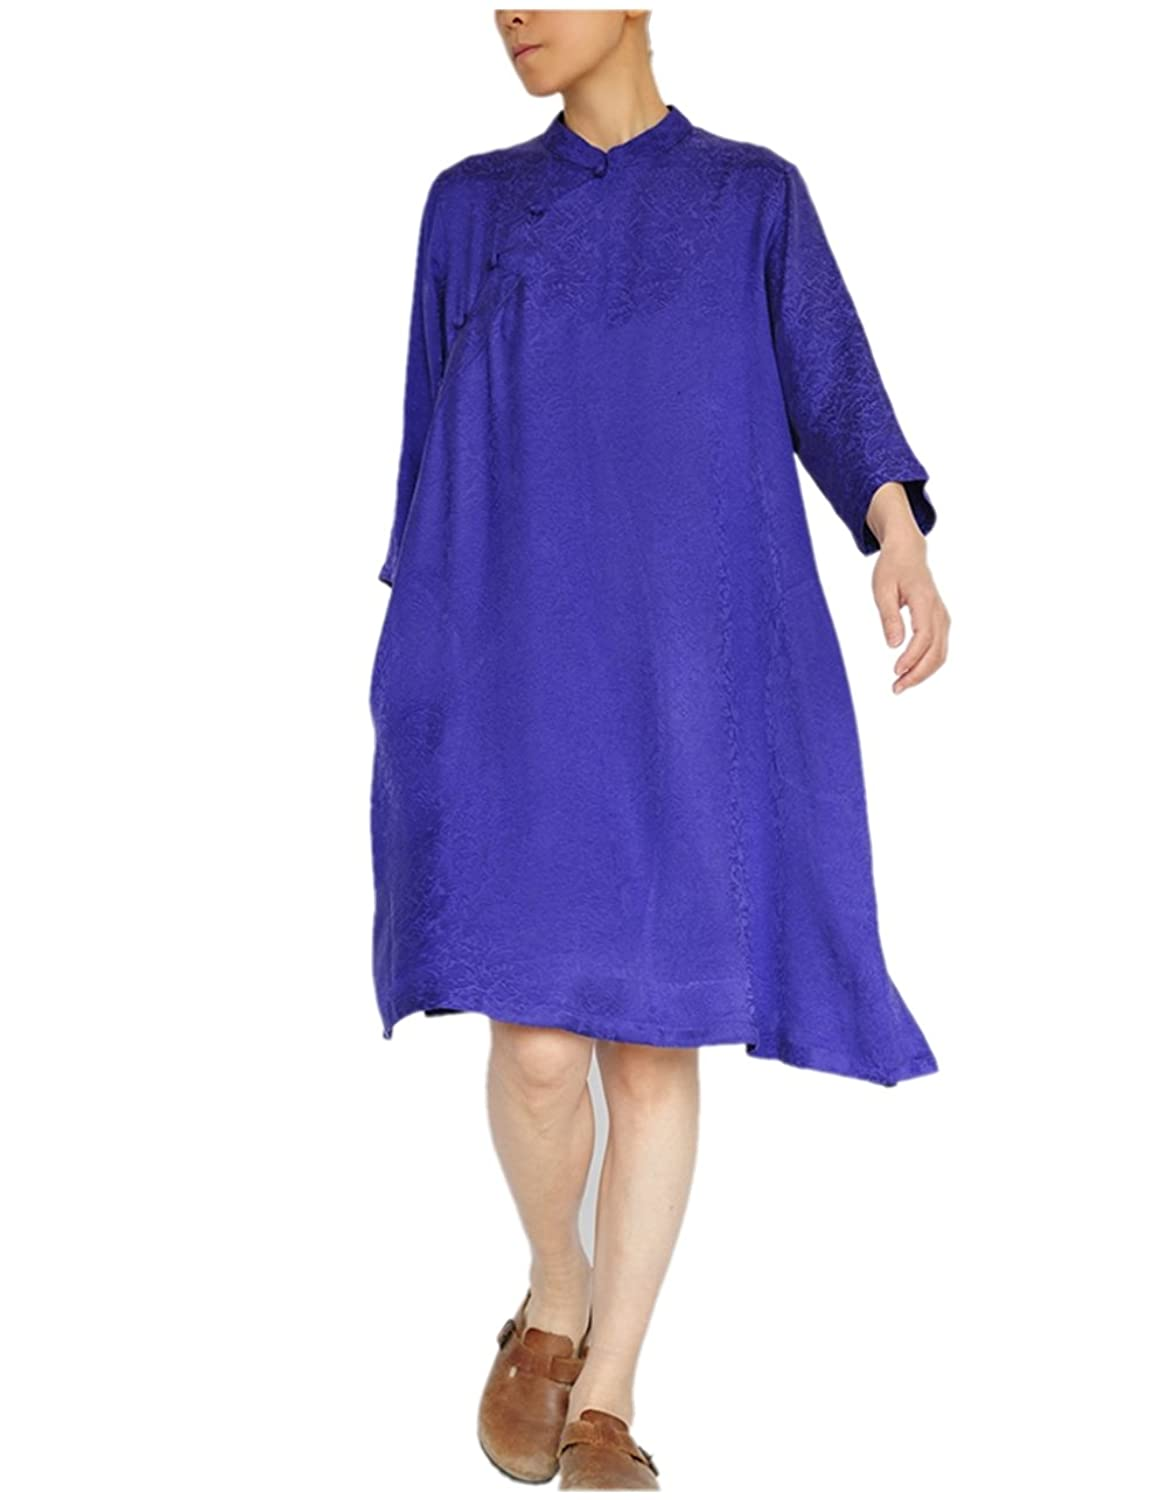 Katuo Women's Cupro Silk Dress Half Sleeve Loose Leisure Robe